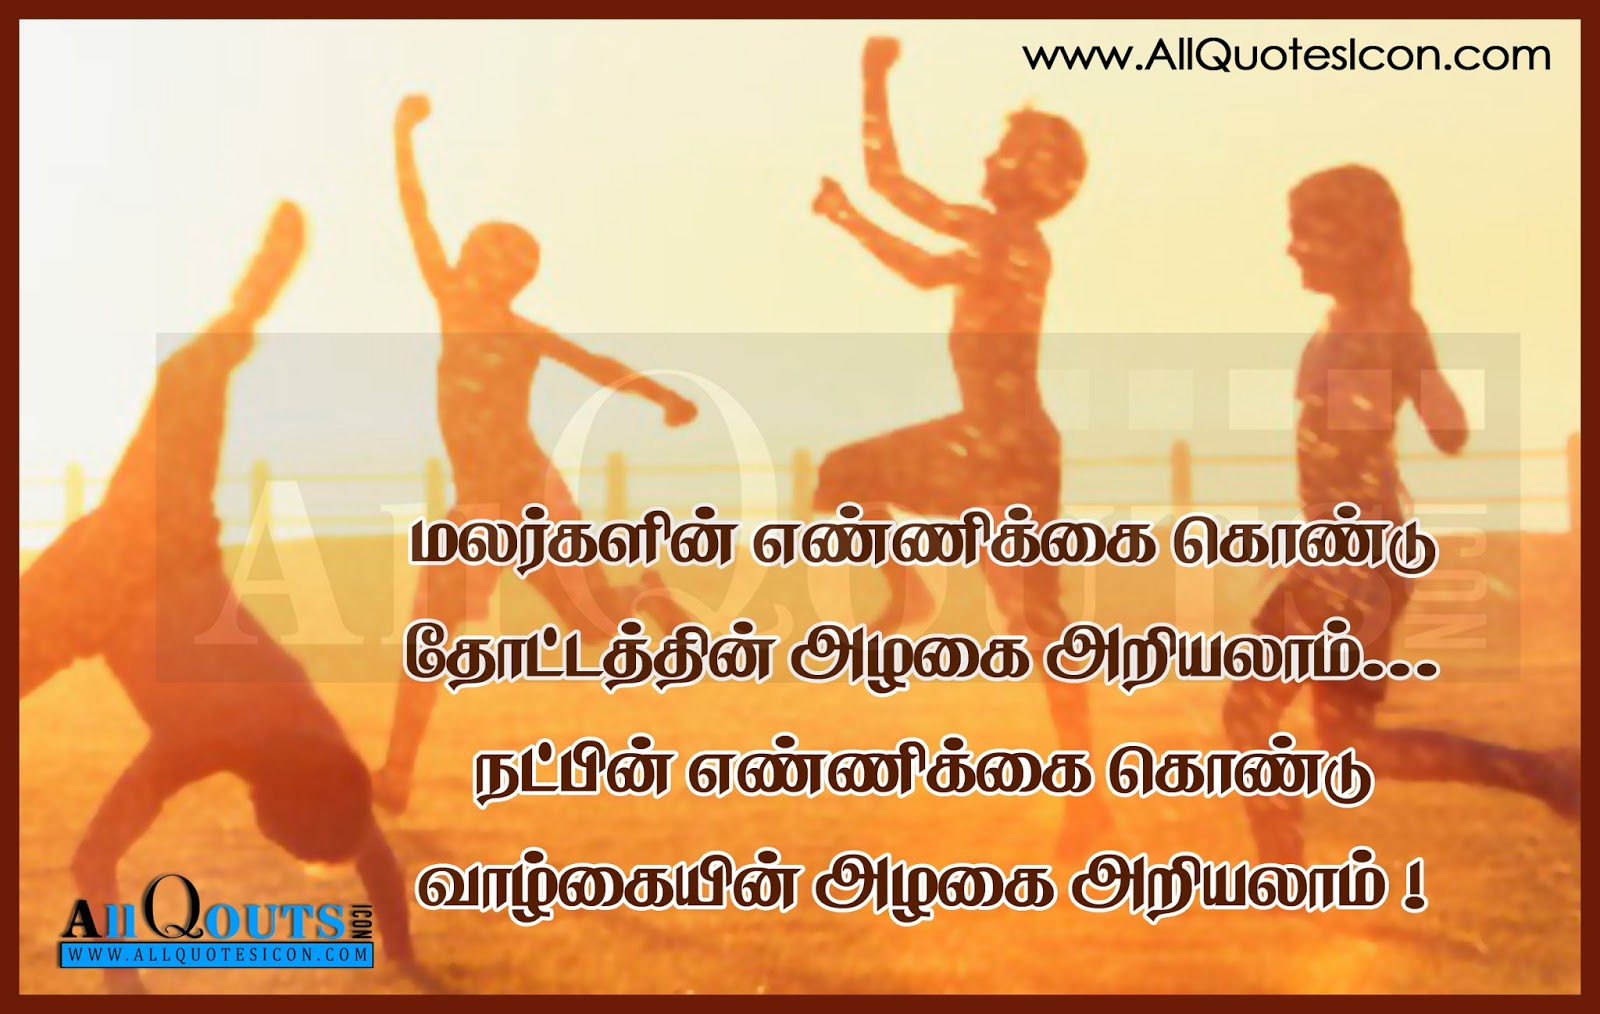 friendship essays in tamil · friendship in tamil essay friendship day 2017 video - duration: 12:19 green gold 5,243,107 views 12:19 hedonic calculus essay - duration: 1:17.